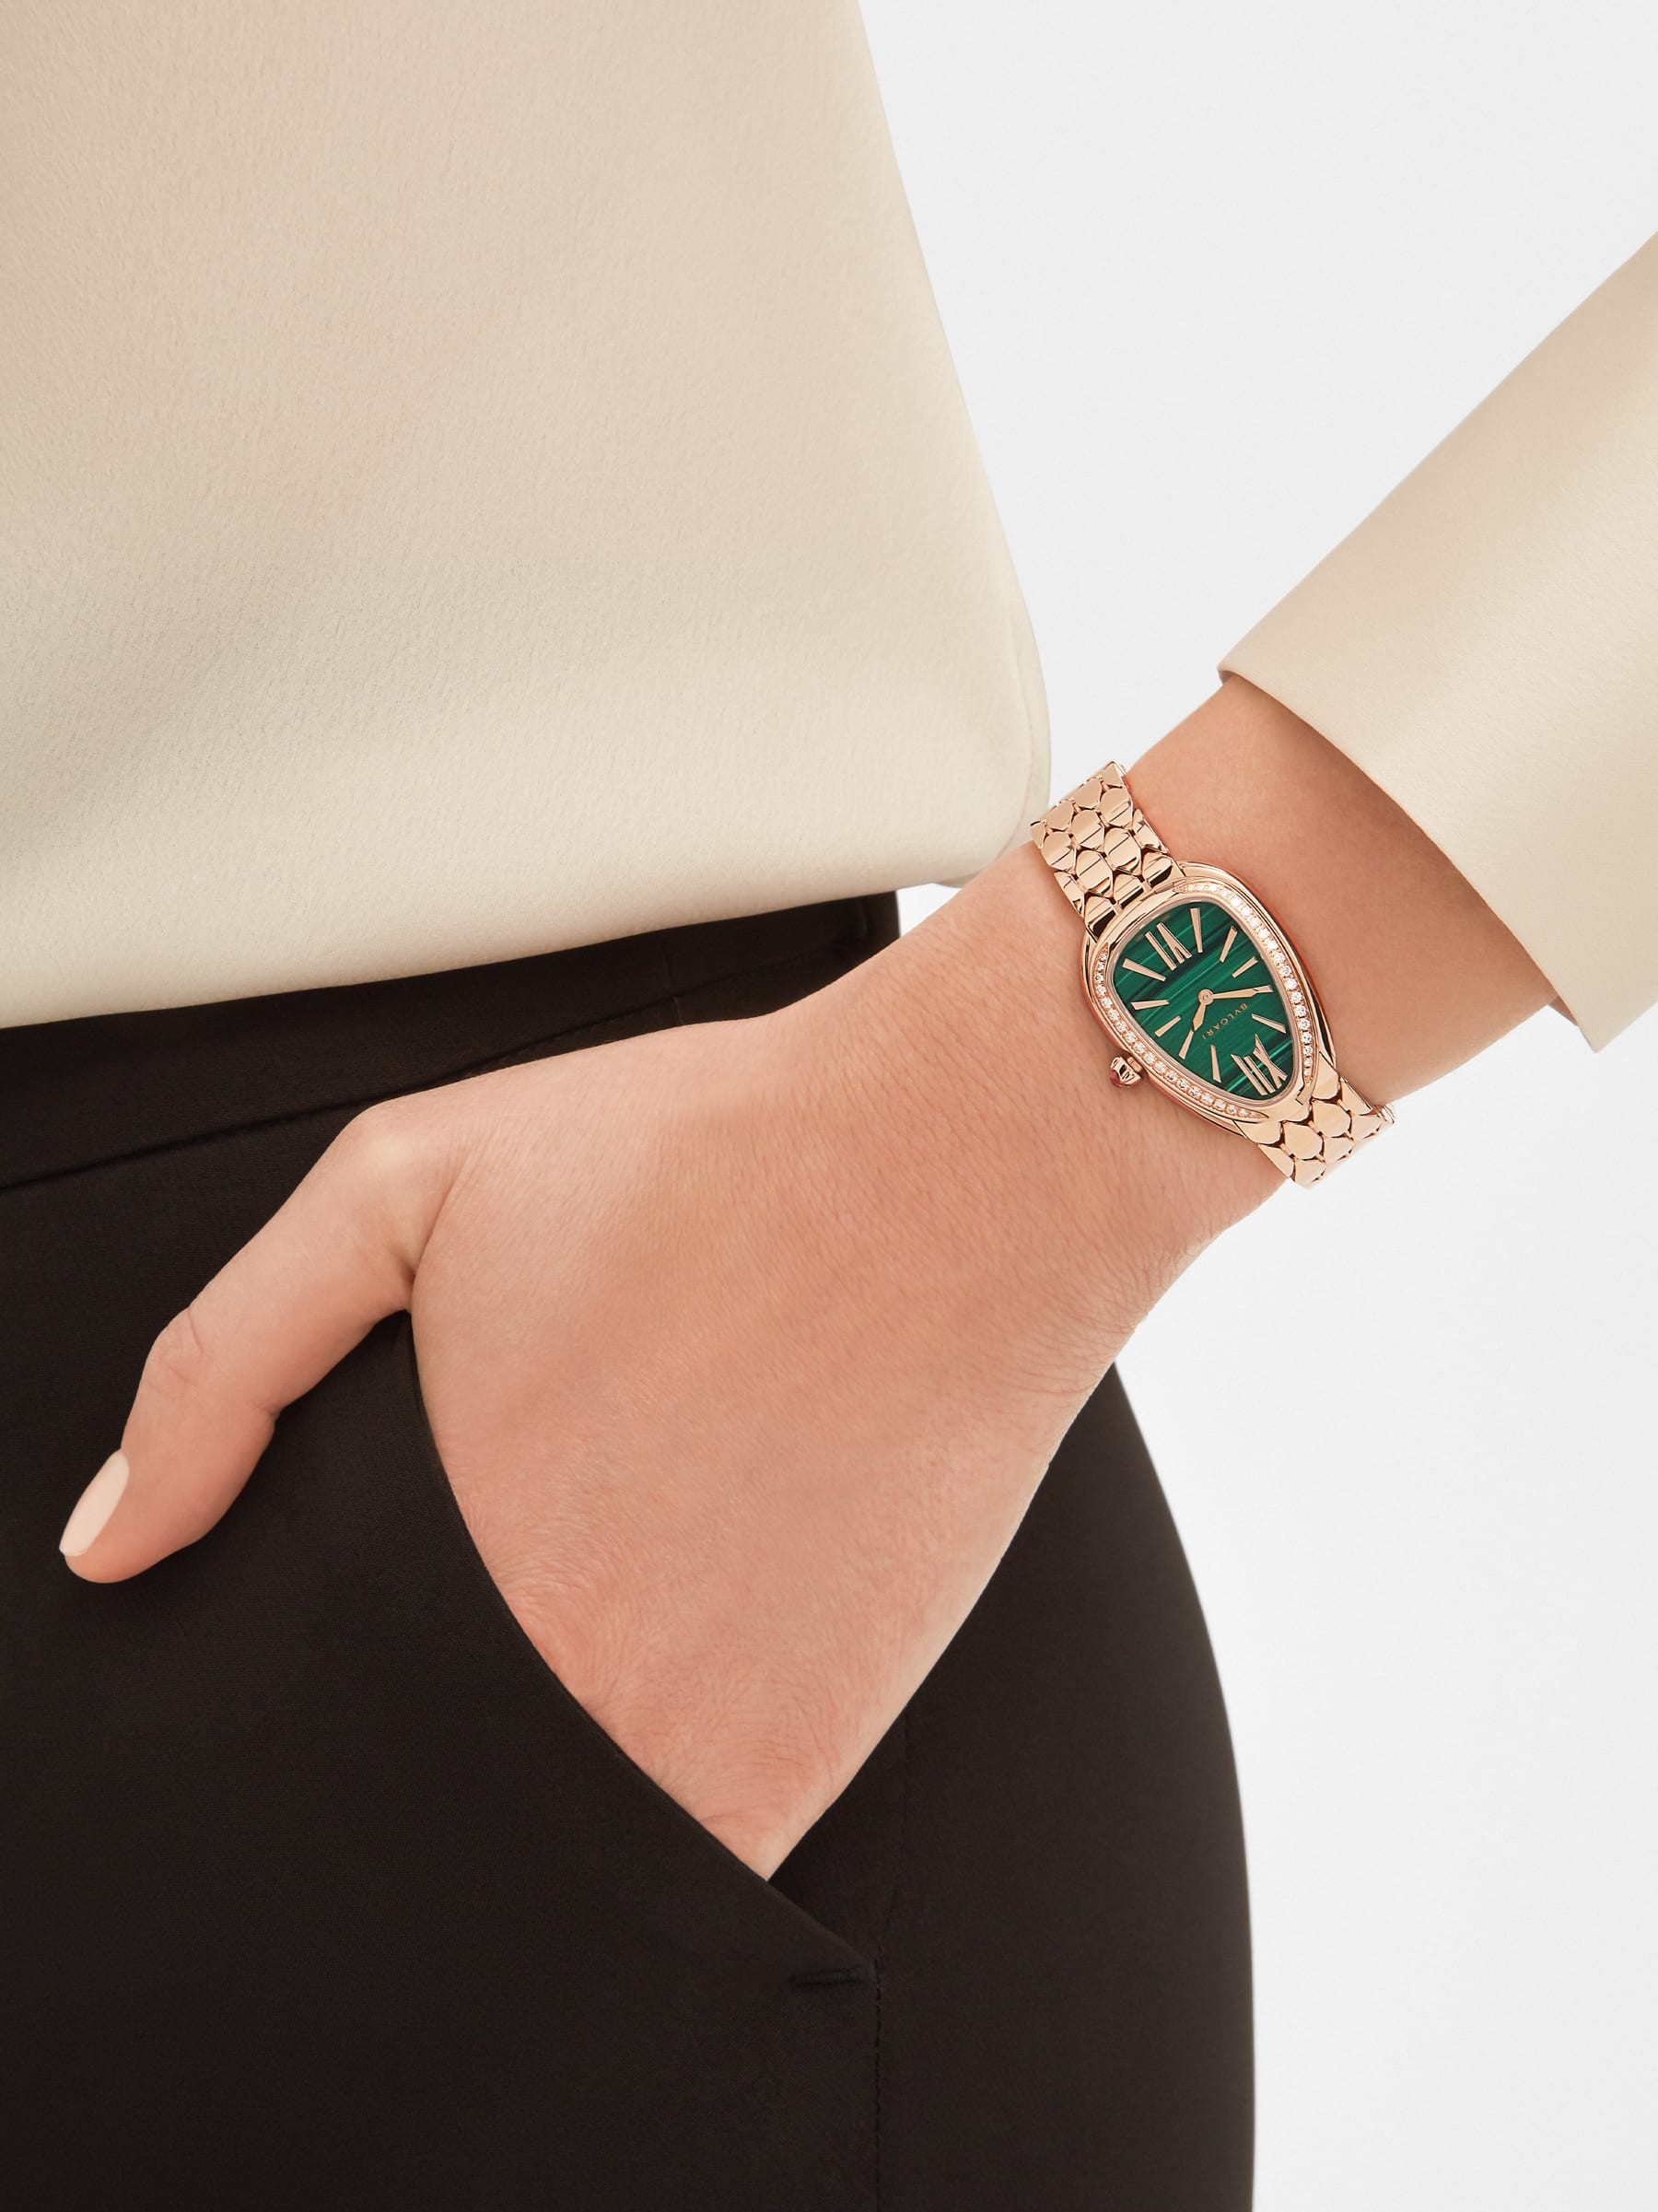 Serpenti Seduttori watch with 18 kt rose gold case and bracelet, 18 kt rose gold bezel set with diamonds and malachite dial 103273 image 4